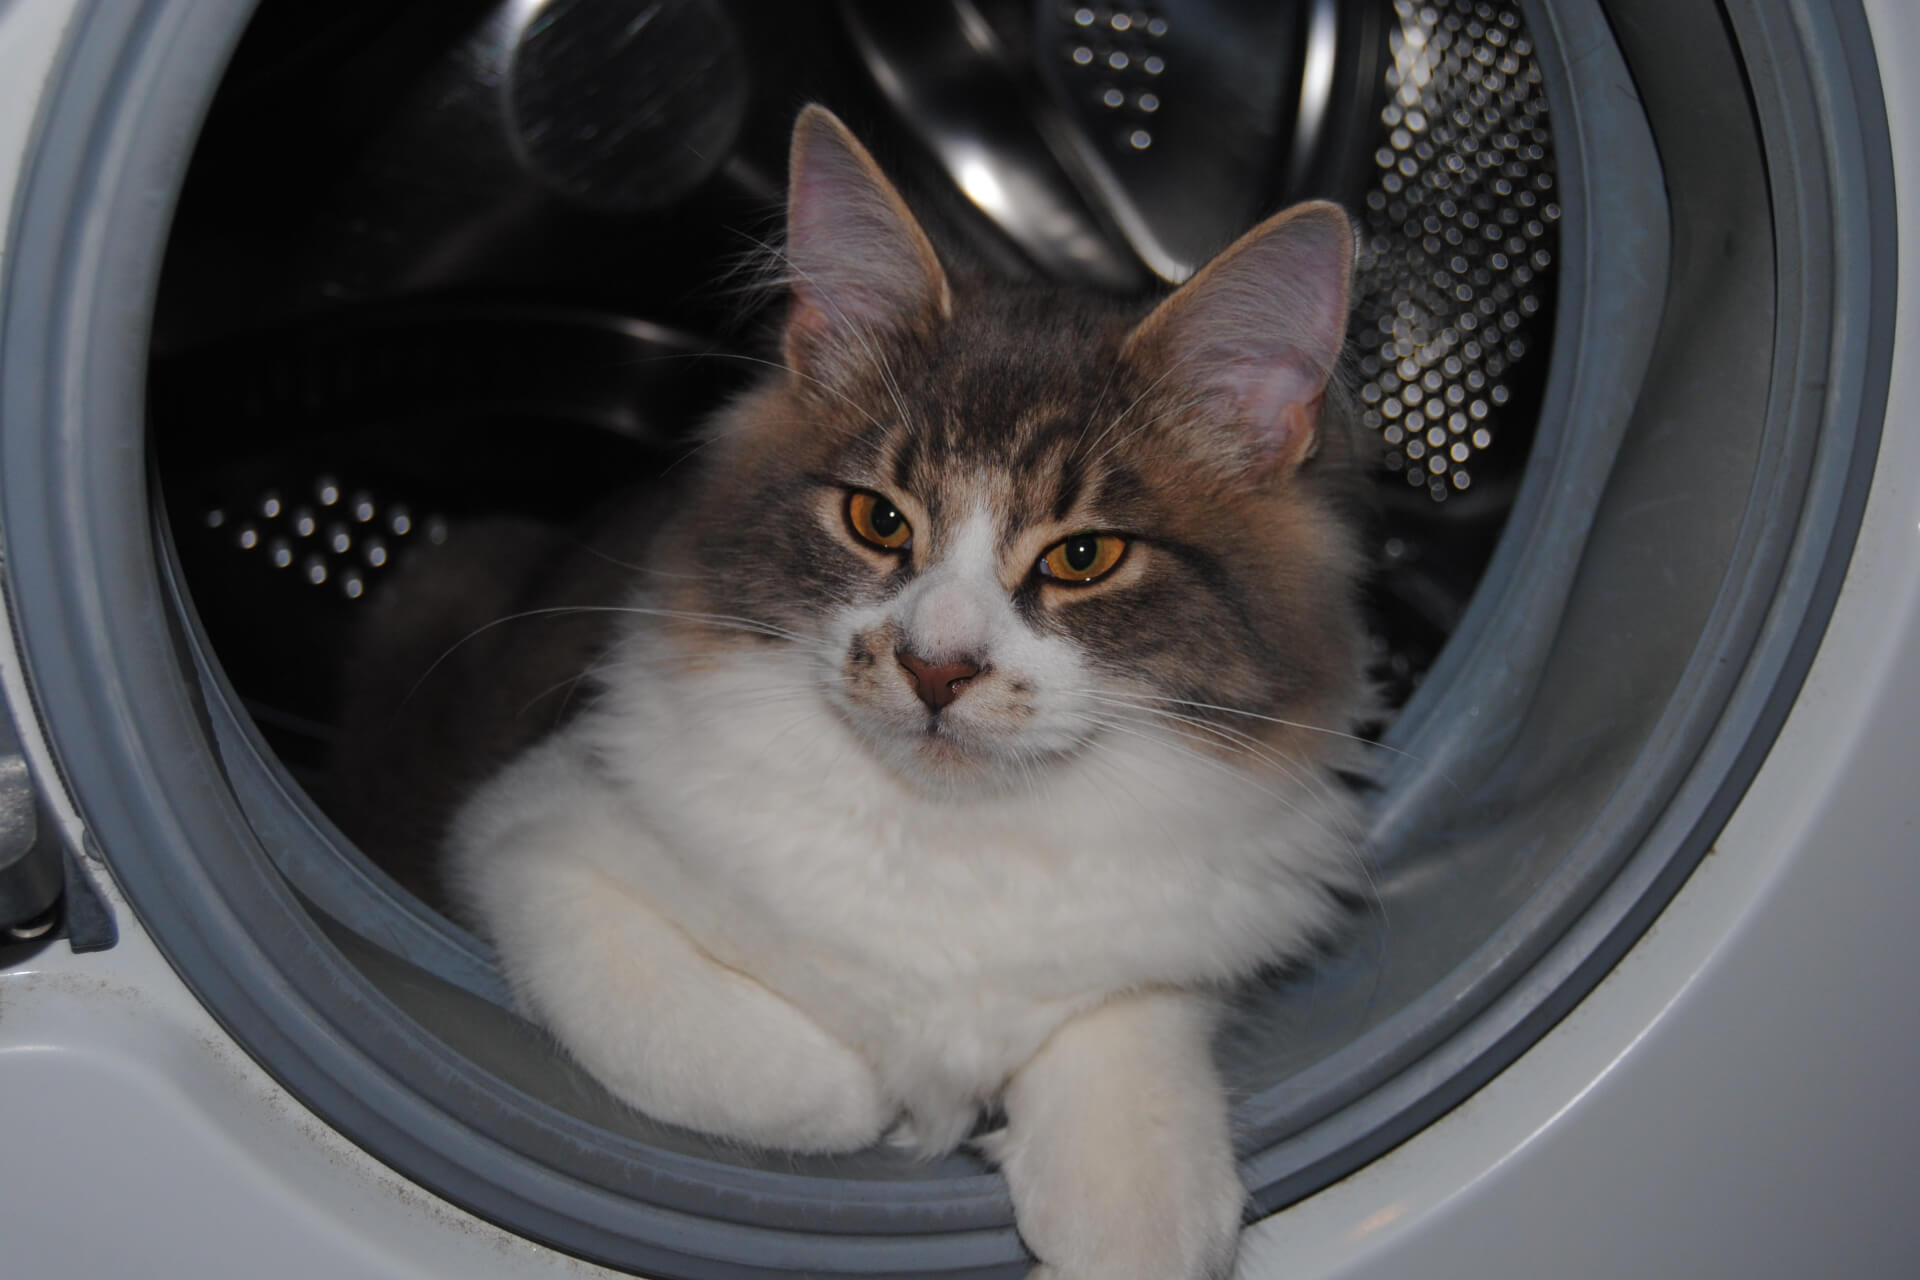 How to Get Rid of Dog Hair in Washing Machine